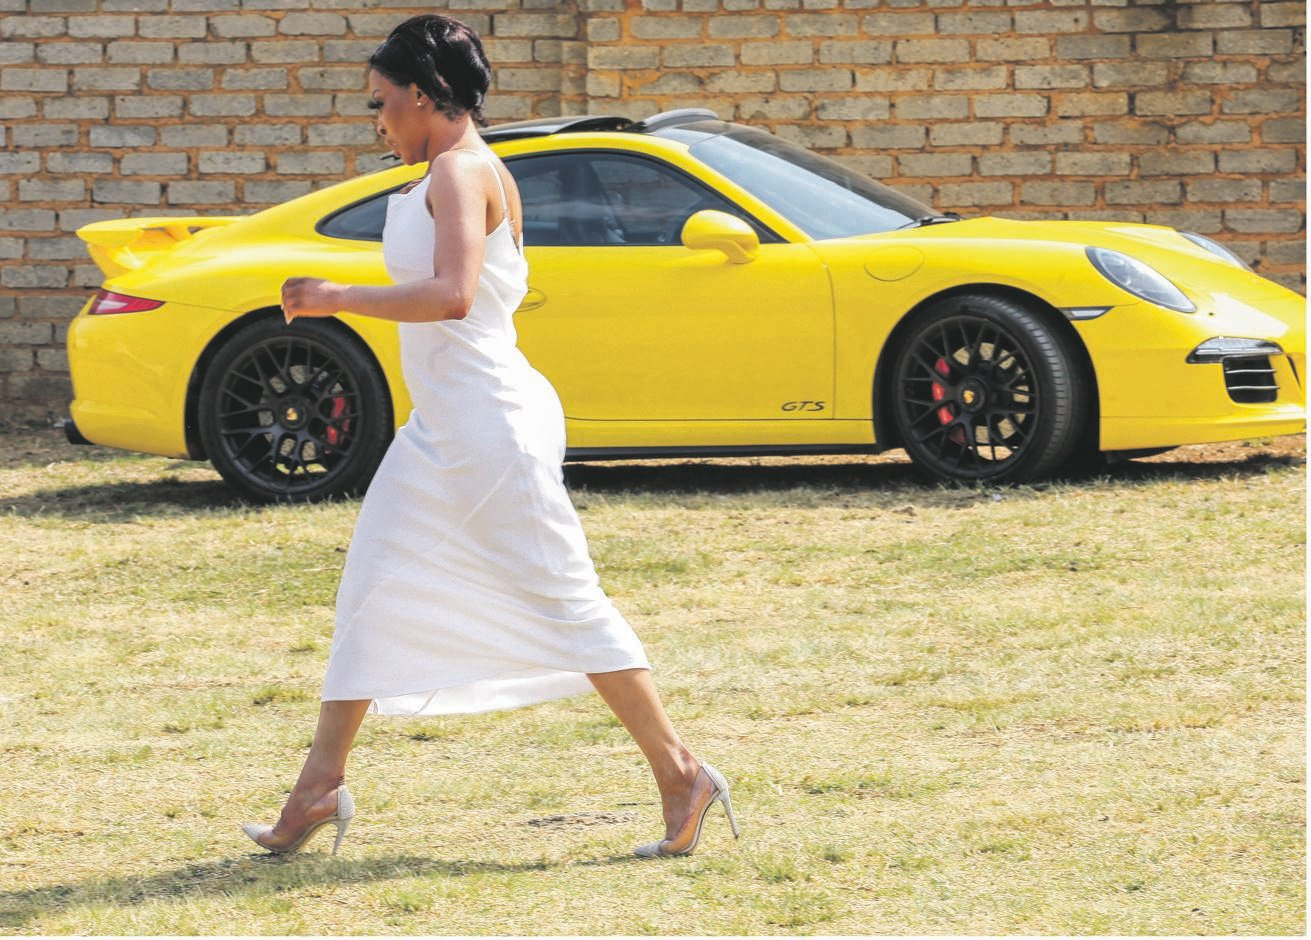 Standard Bank wants its money or Khanyi Mbau's cars back. Picture: Sharon Seretlo/ Gallo Images